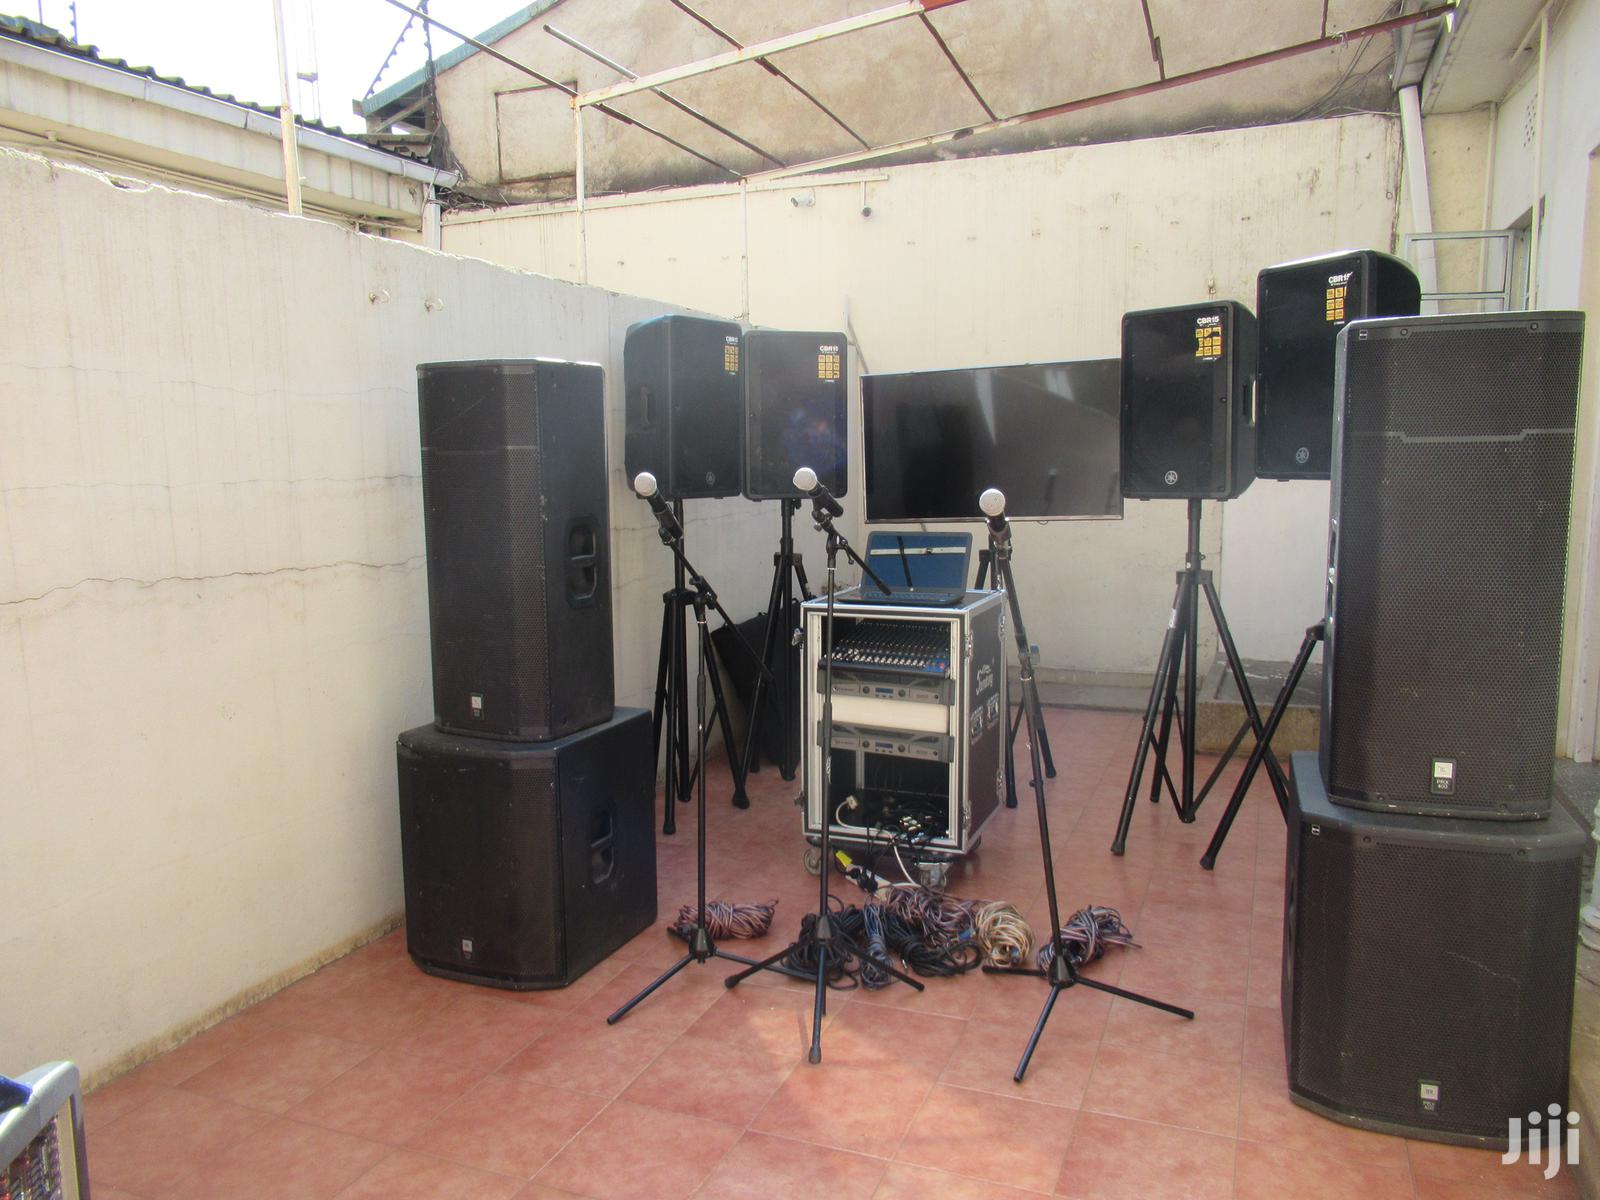 PA System For HIRE | DJ & Entertainment Services for sale in Nairobi Central, Nairobi, Kenya